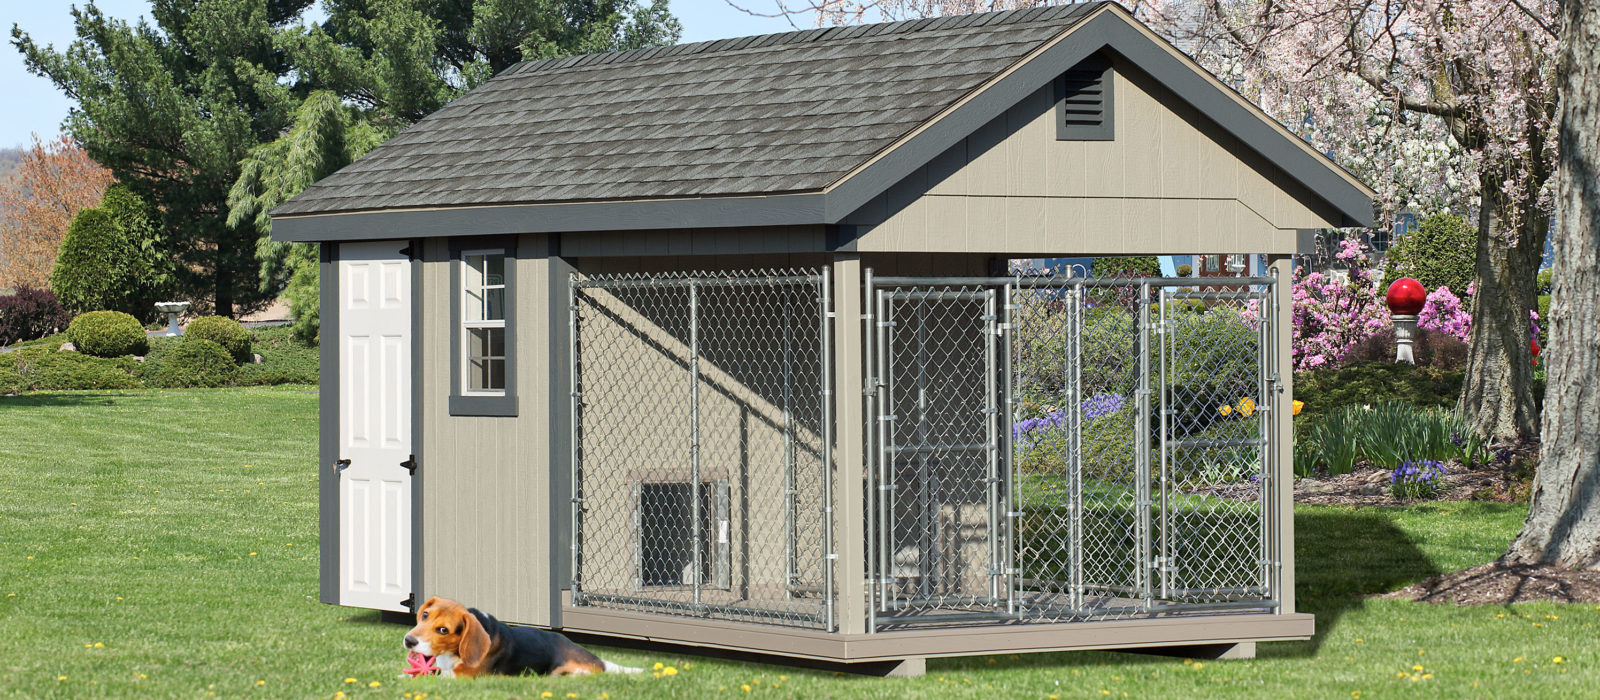 8x16 dog kennel